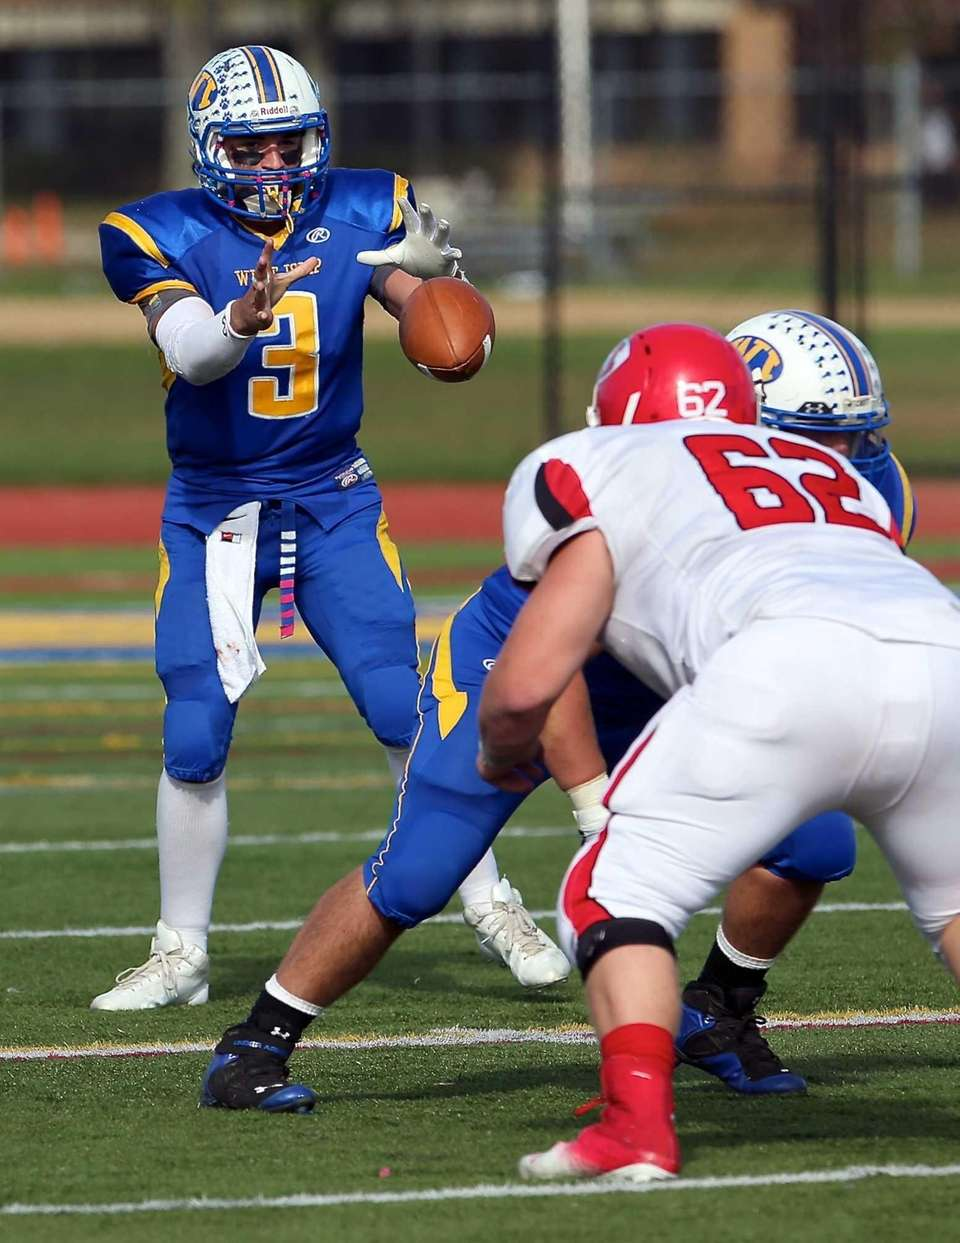 West Islip quarterback Sam Ilario takes the snap